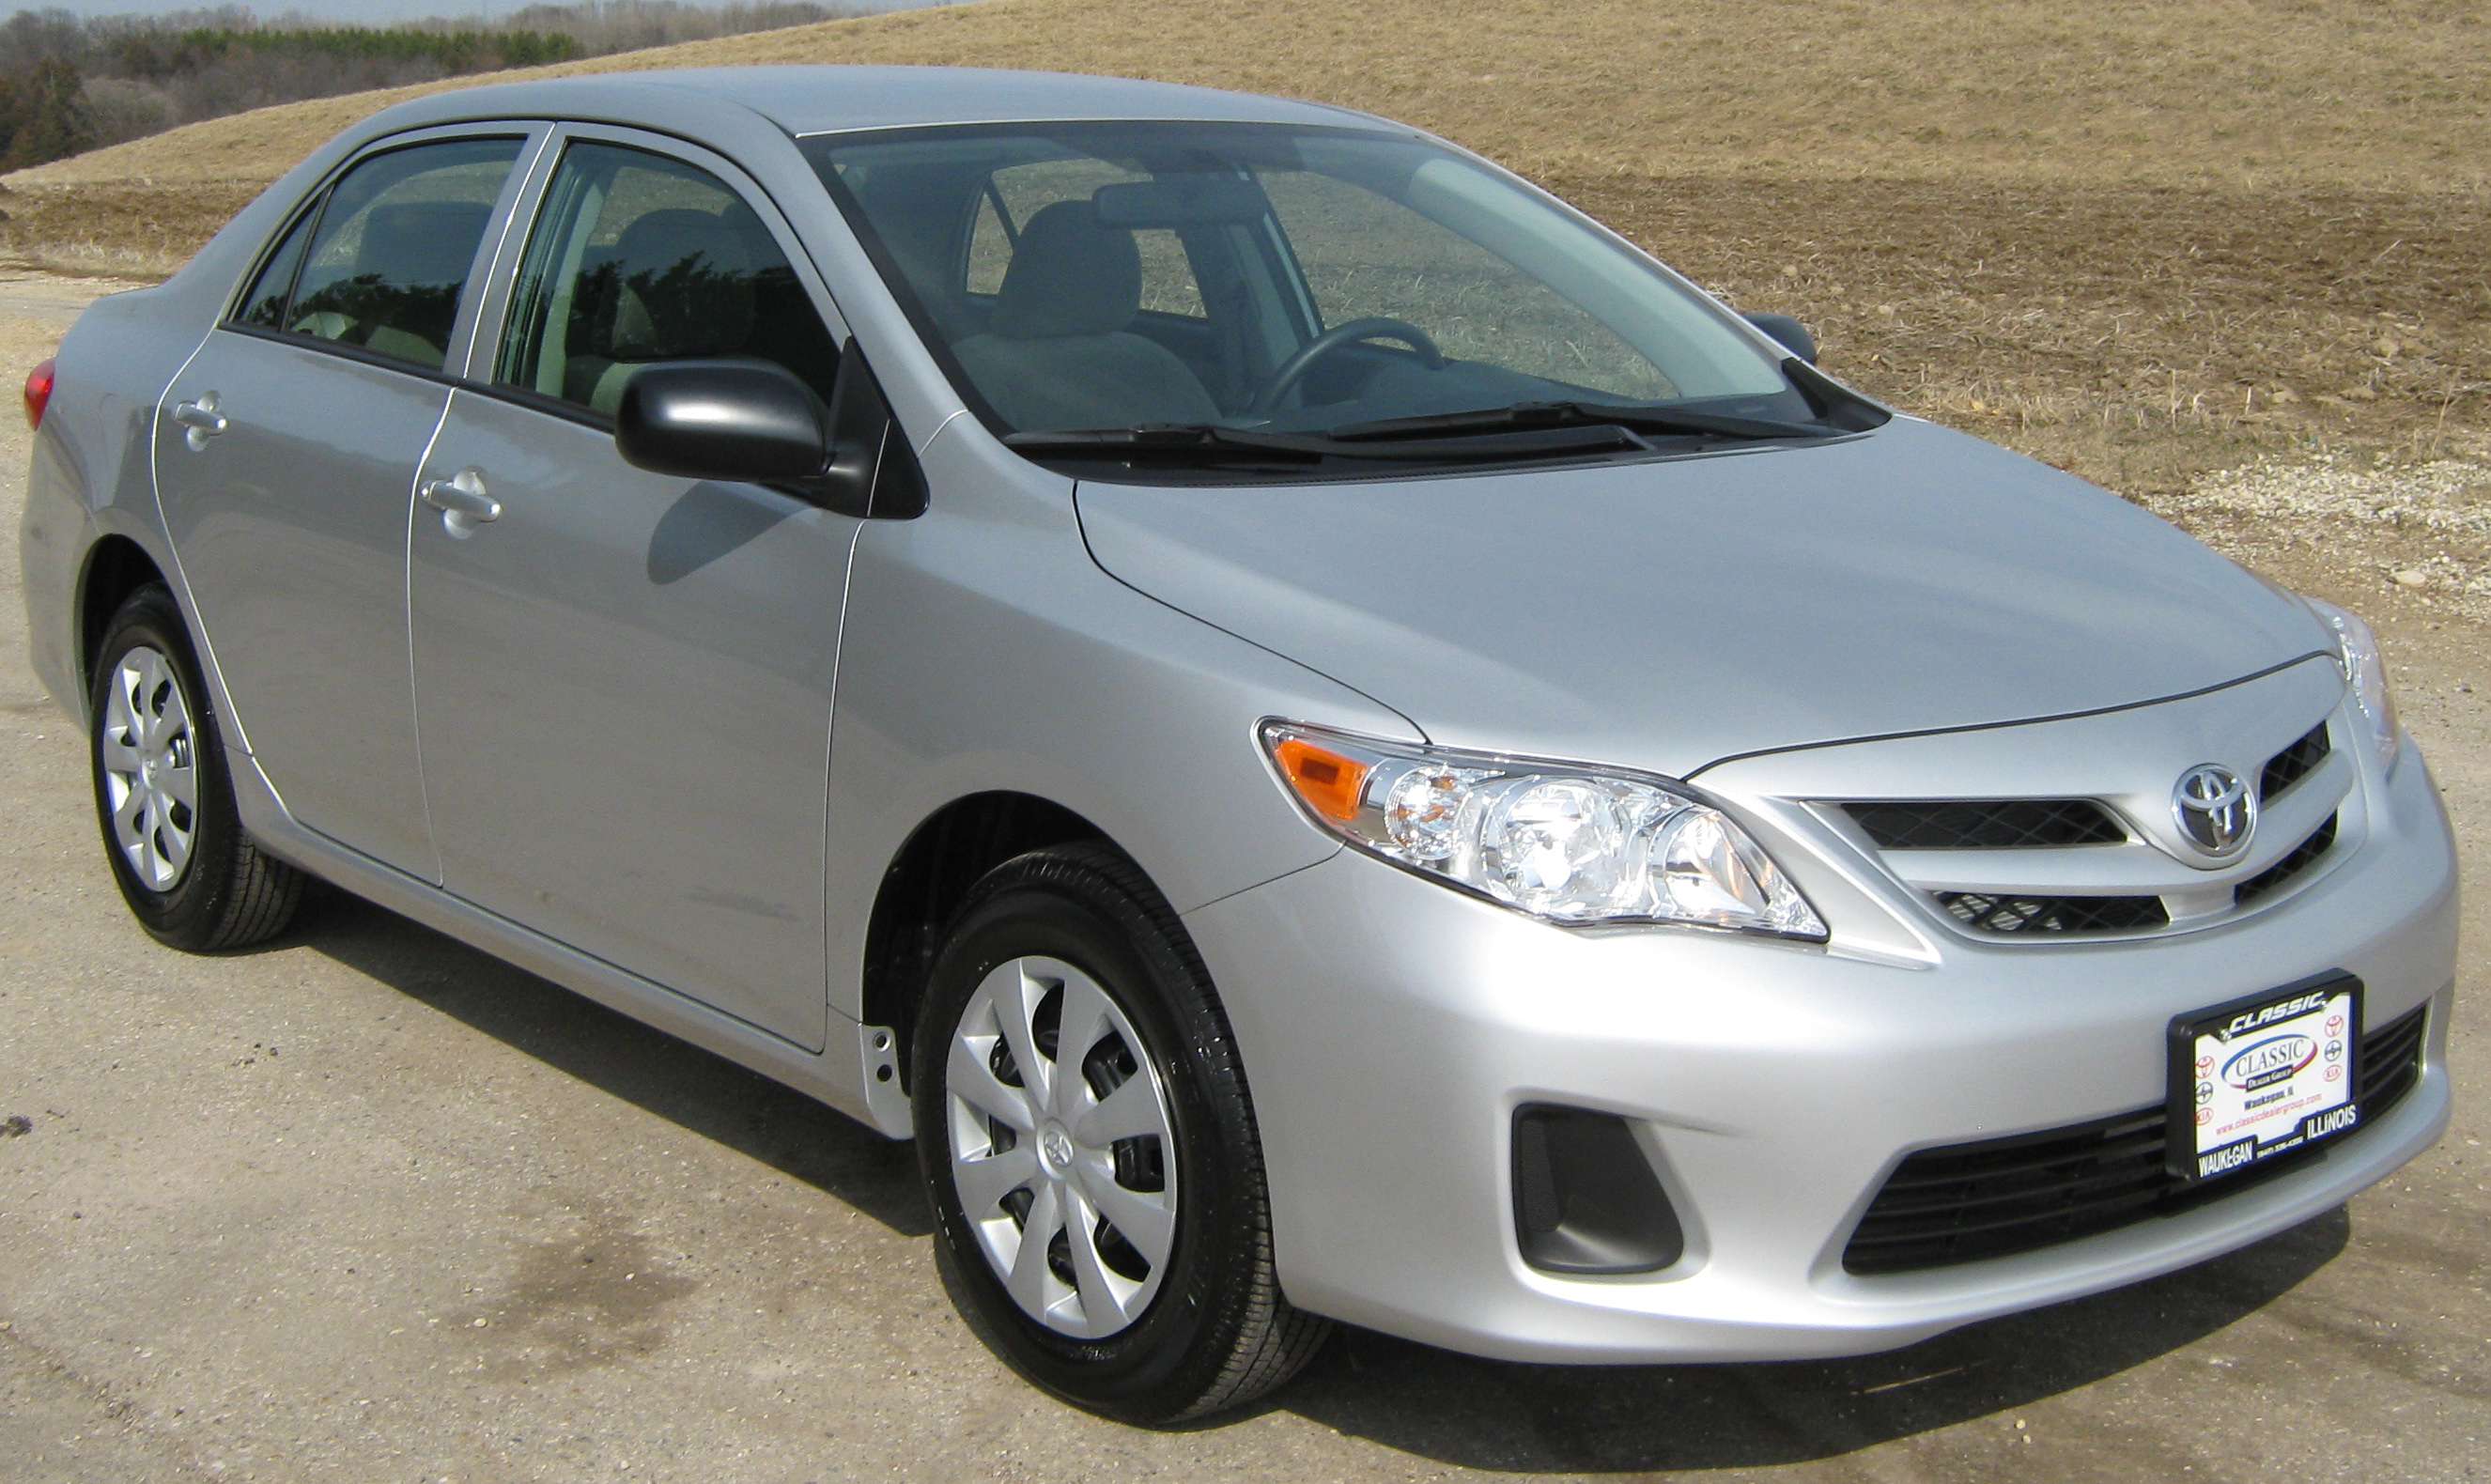 2011 toyota corolla size 1 8 mb resolution 2652x1580 type link file src download photo